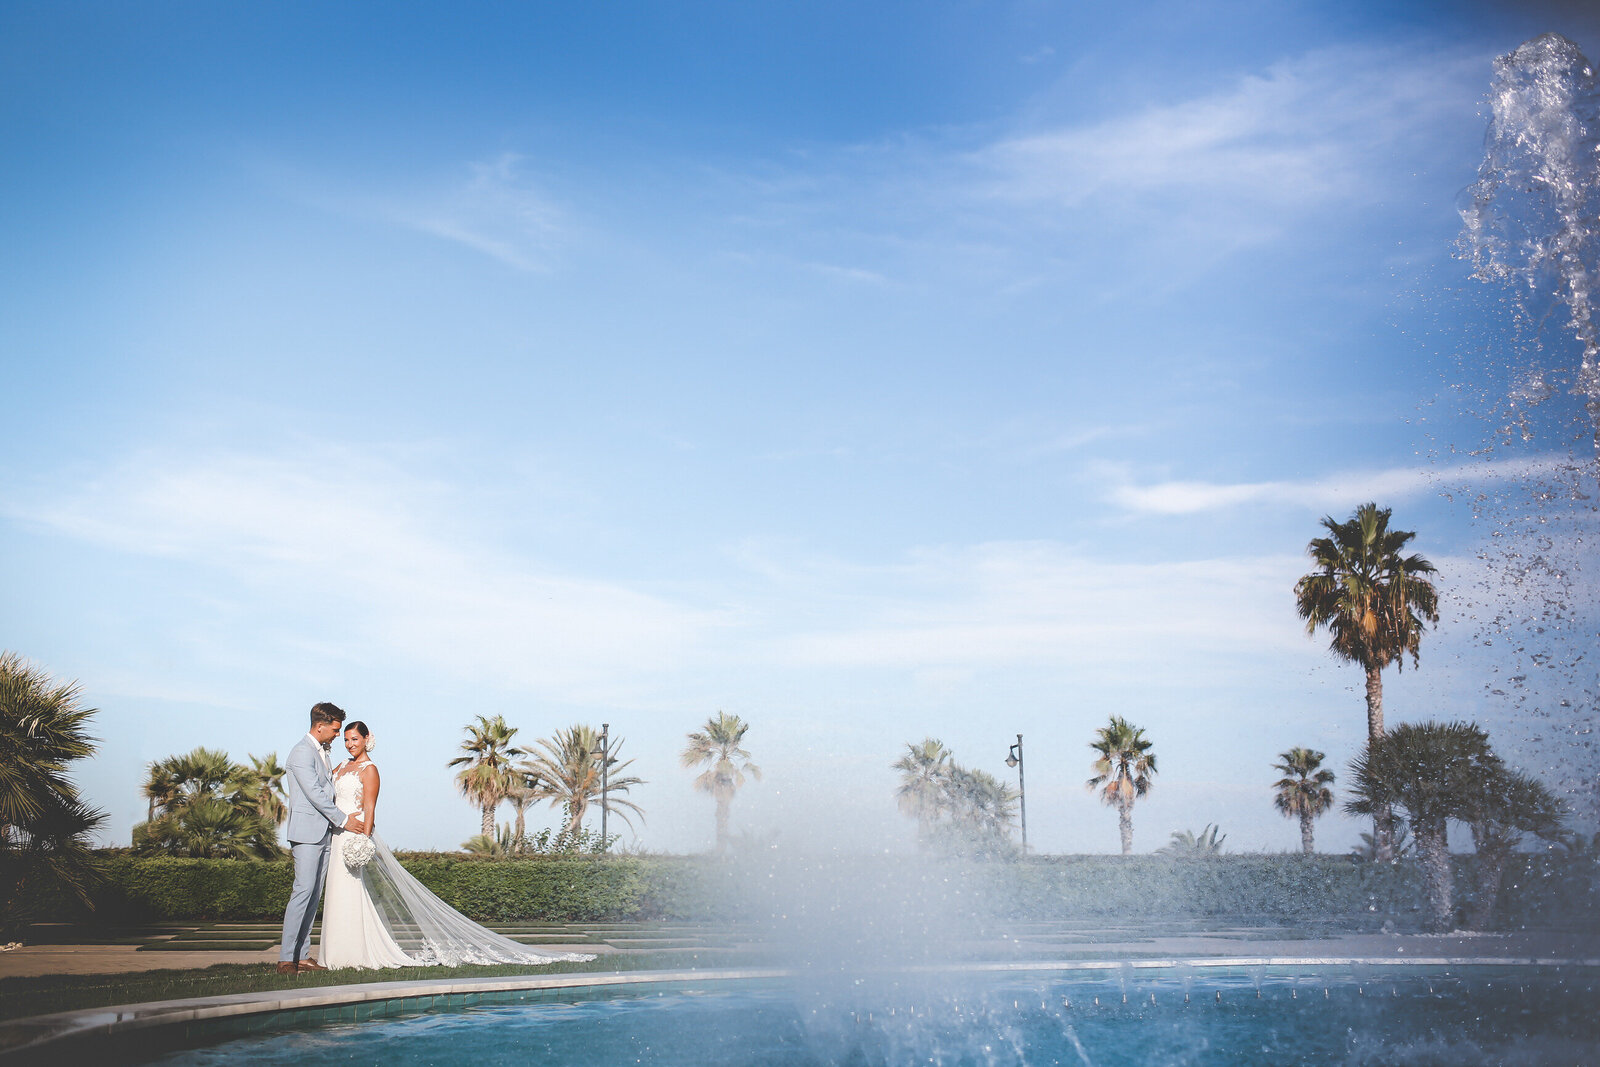 WP-DESTINATION-WEDDING-SPAIN-PALM-TREES-AND-SUNSHINE-NATURAL_0031